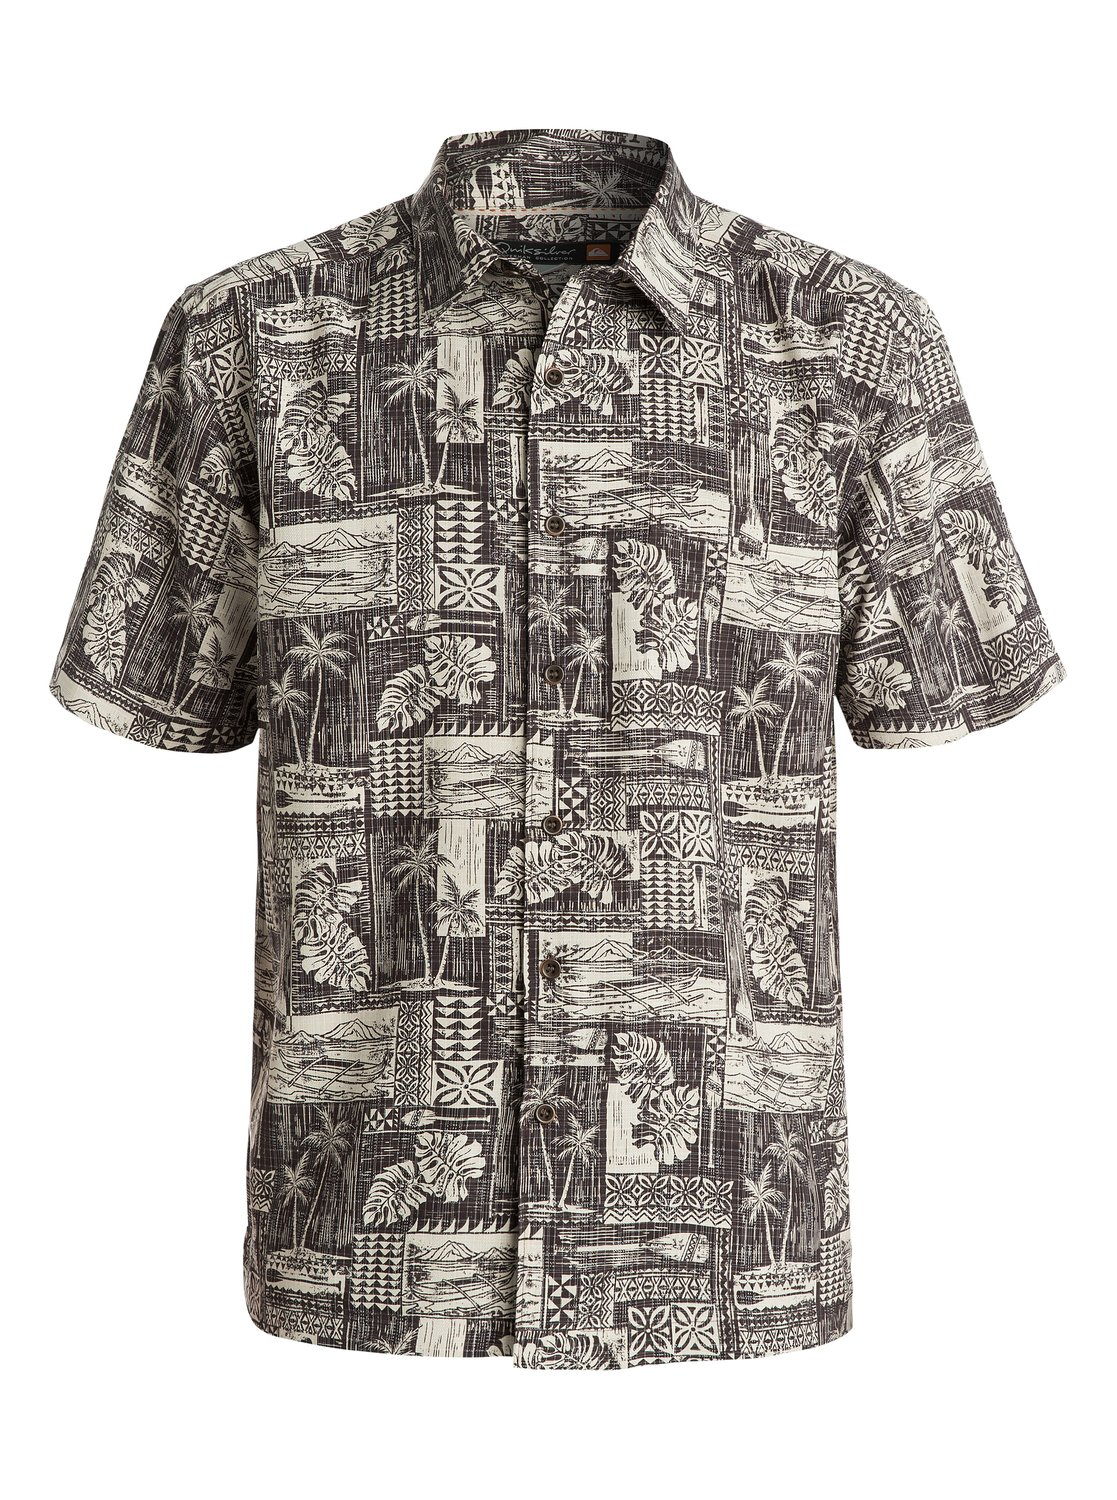 oak harbor men Find 7 listings related to mens wear in oak harbor on ypcom see reviews, photos, directions, phone numbers and more for mens wear locations in oak harbor, wa.